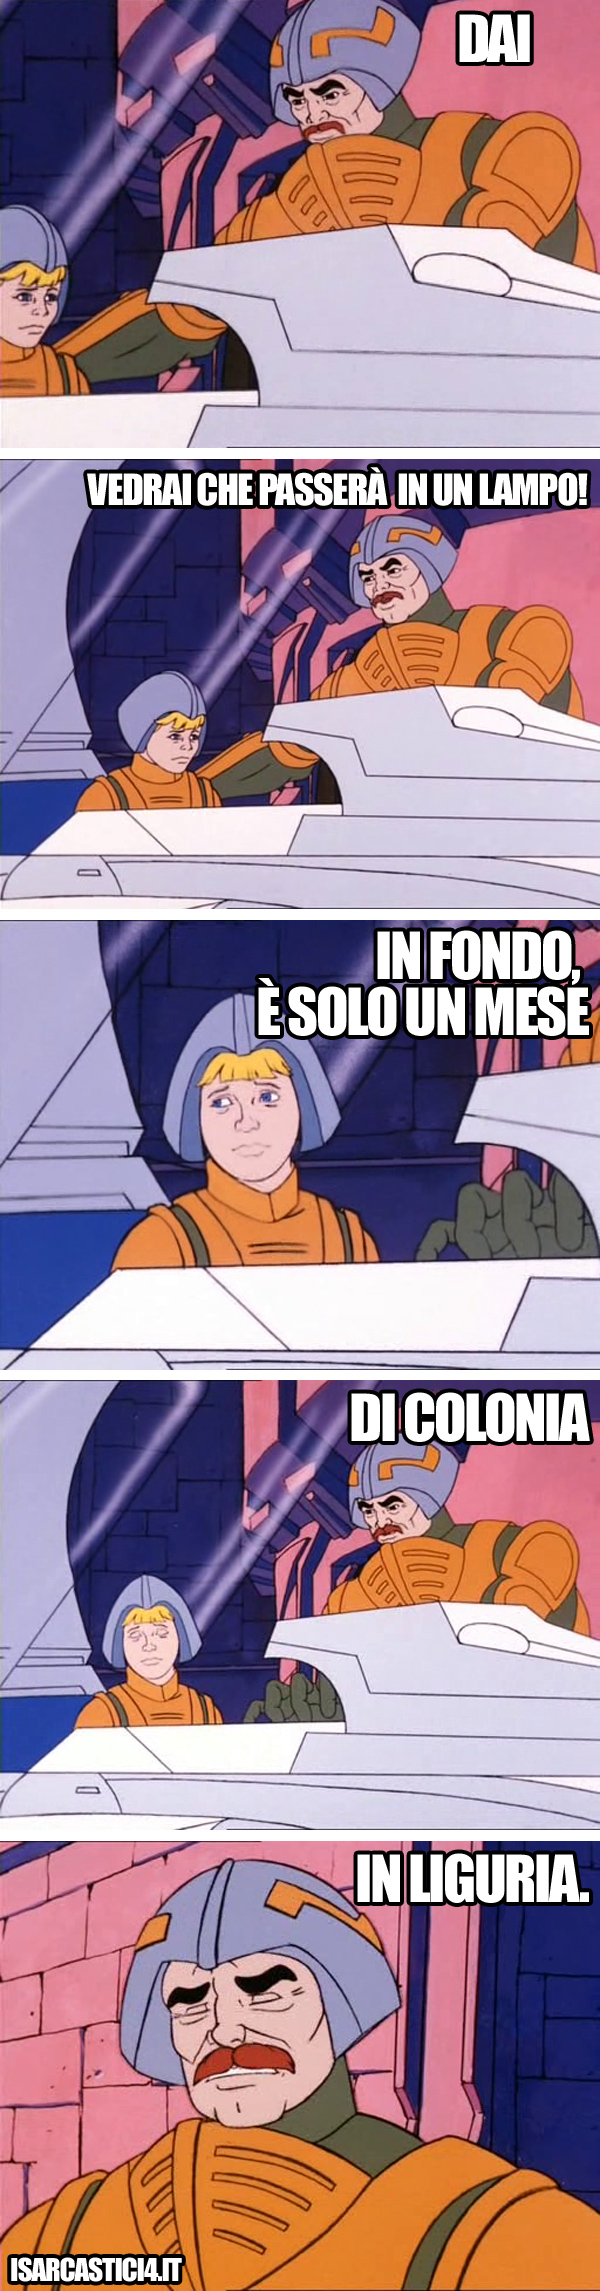 MOTU, Masters Of The Universe meme ita - Dai!